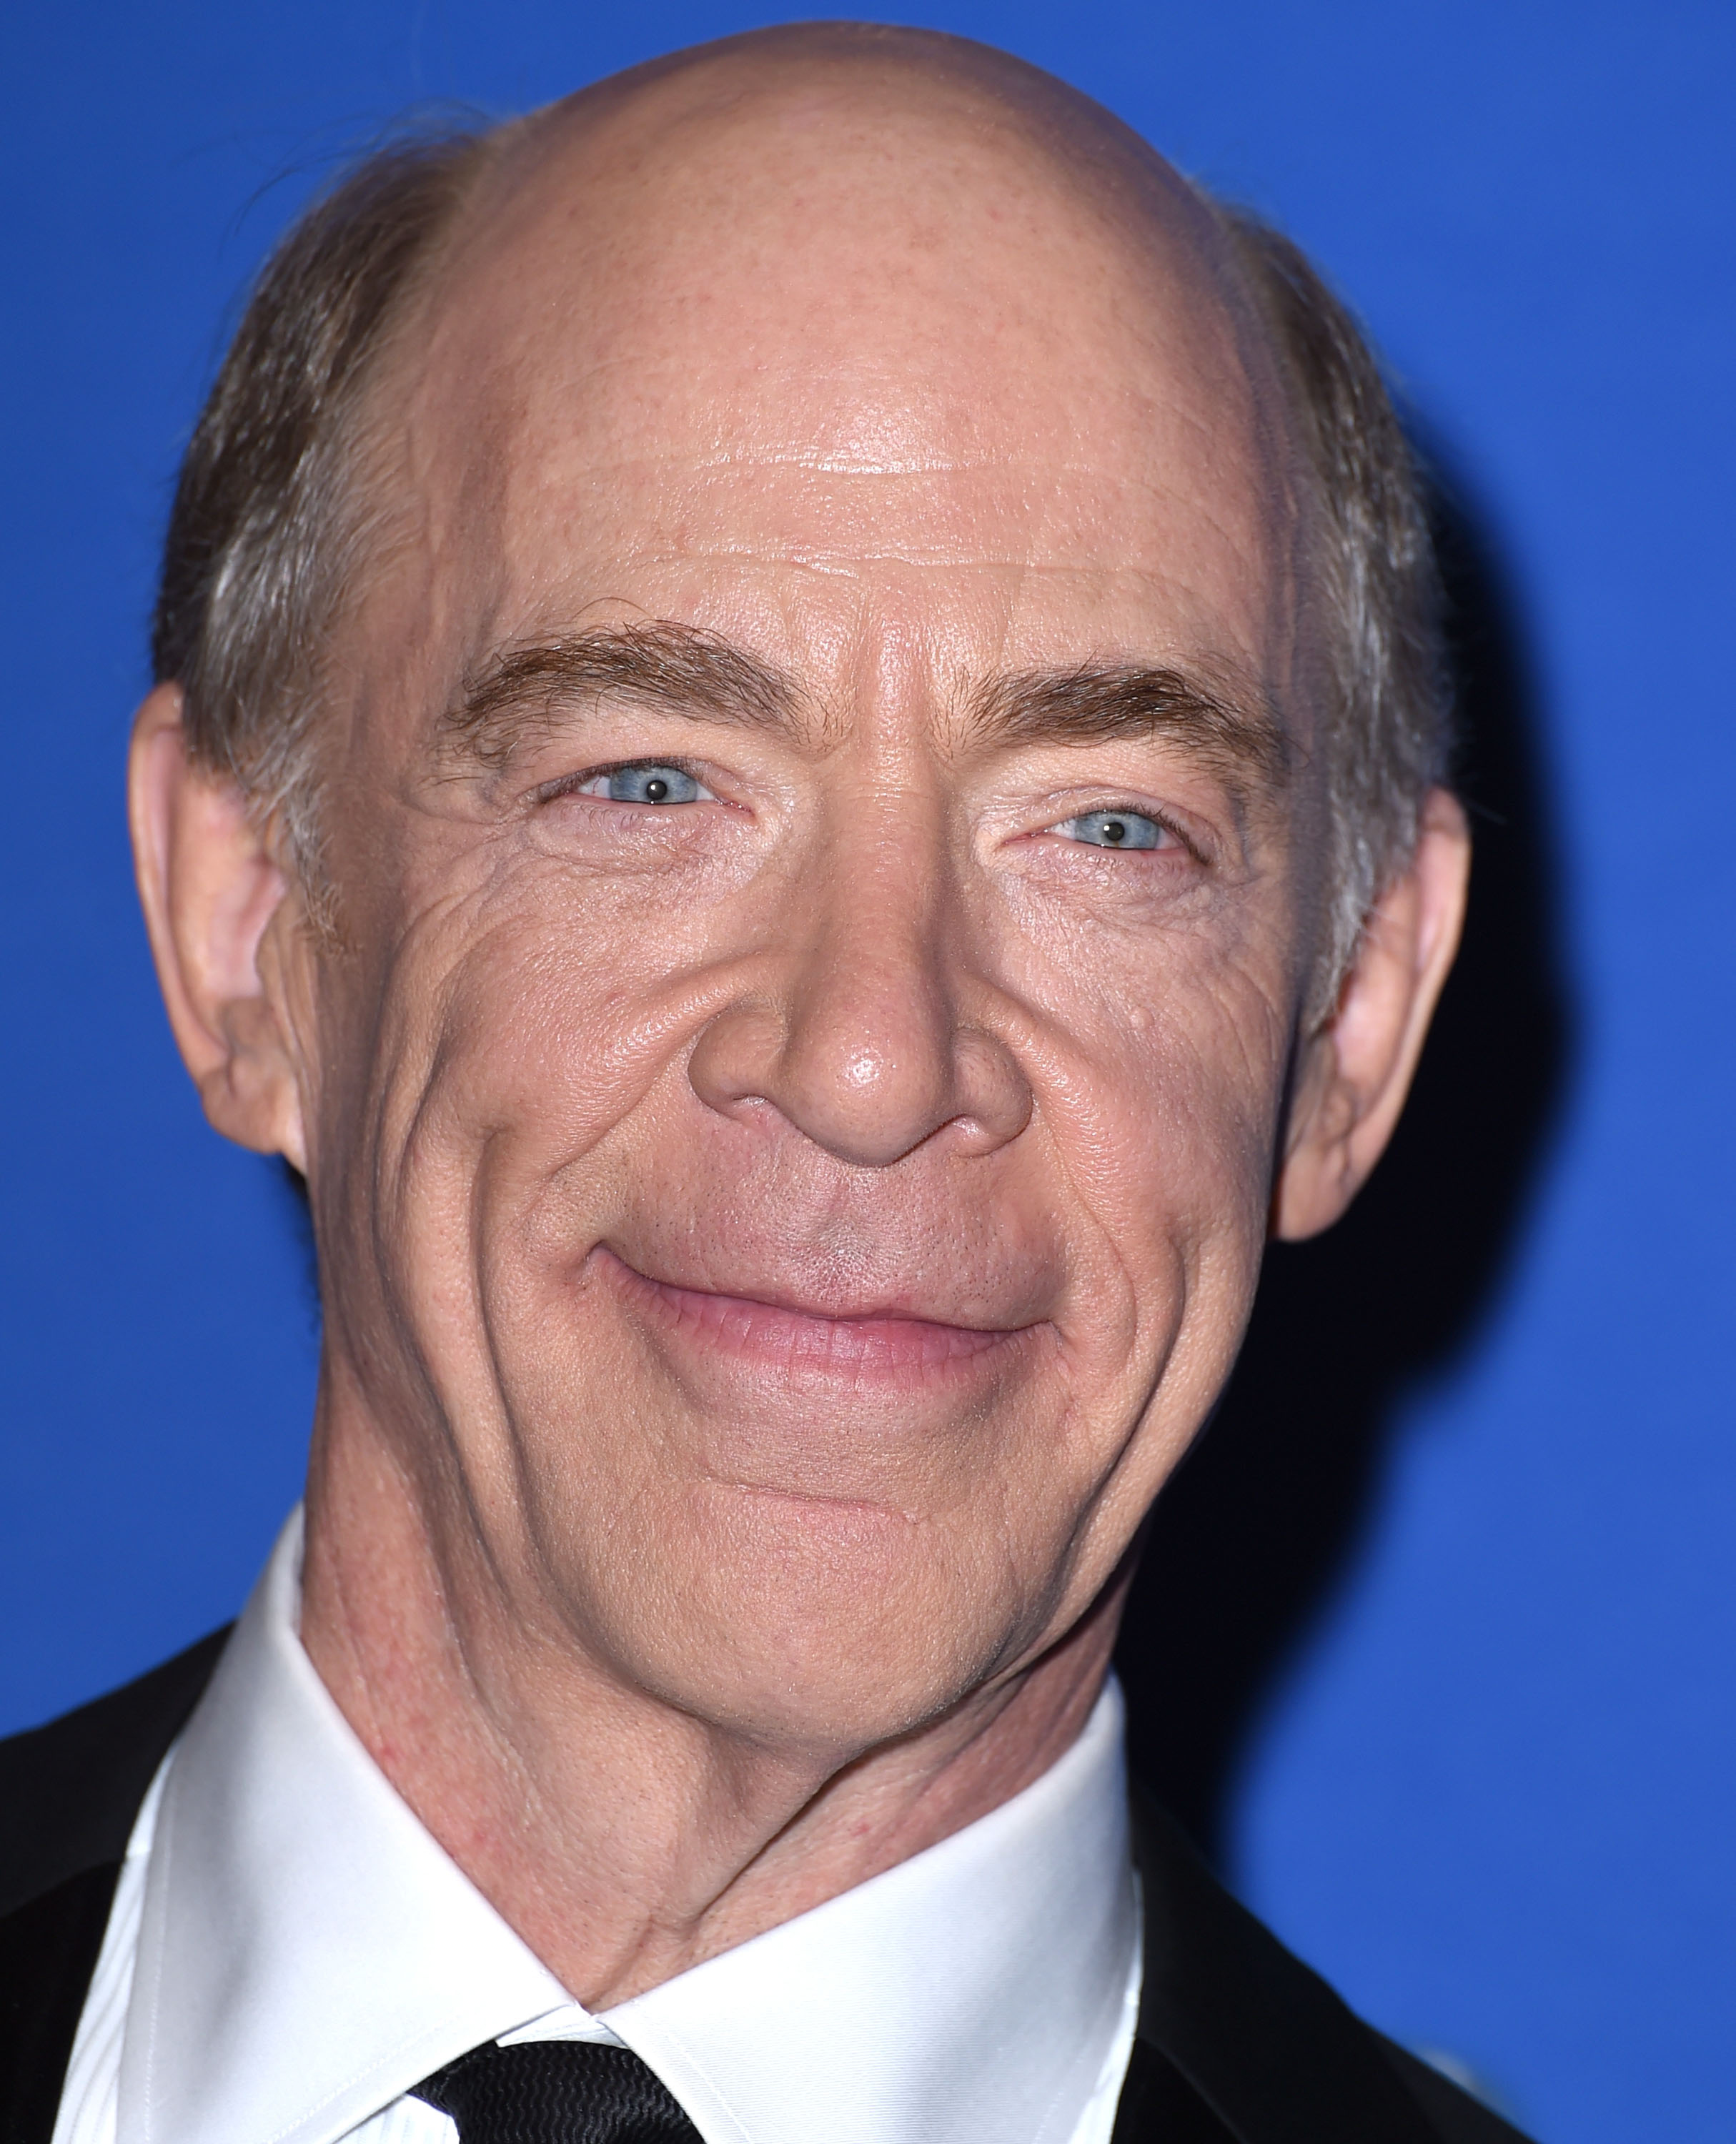 J.K. Simmons poses in the 72nd Annual Golden Globe Awards at The Beverly Hilton Hotel on January 11, 2015 in California.